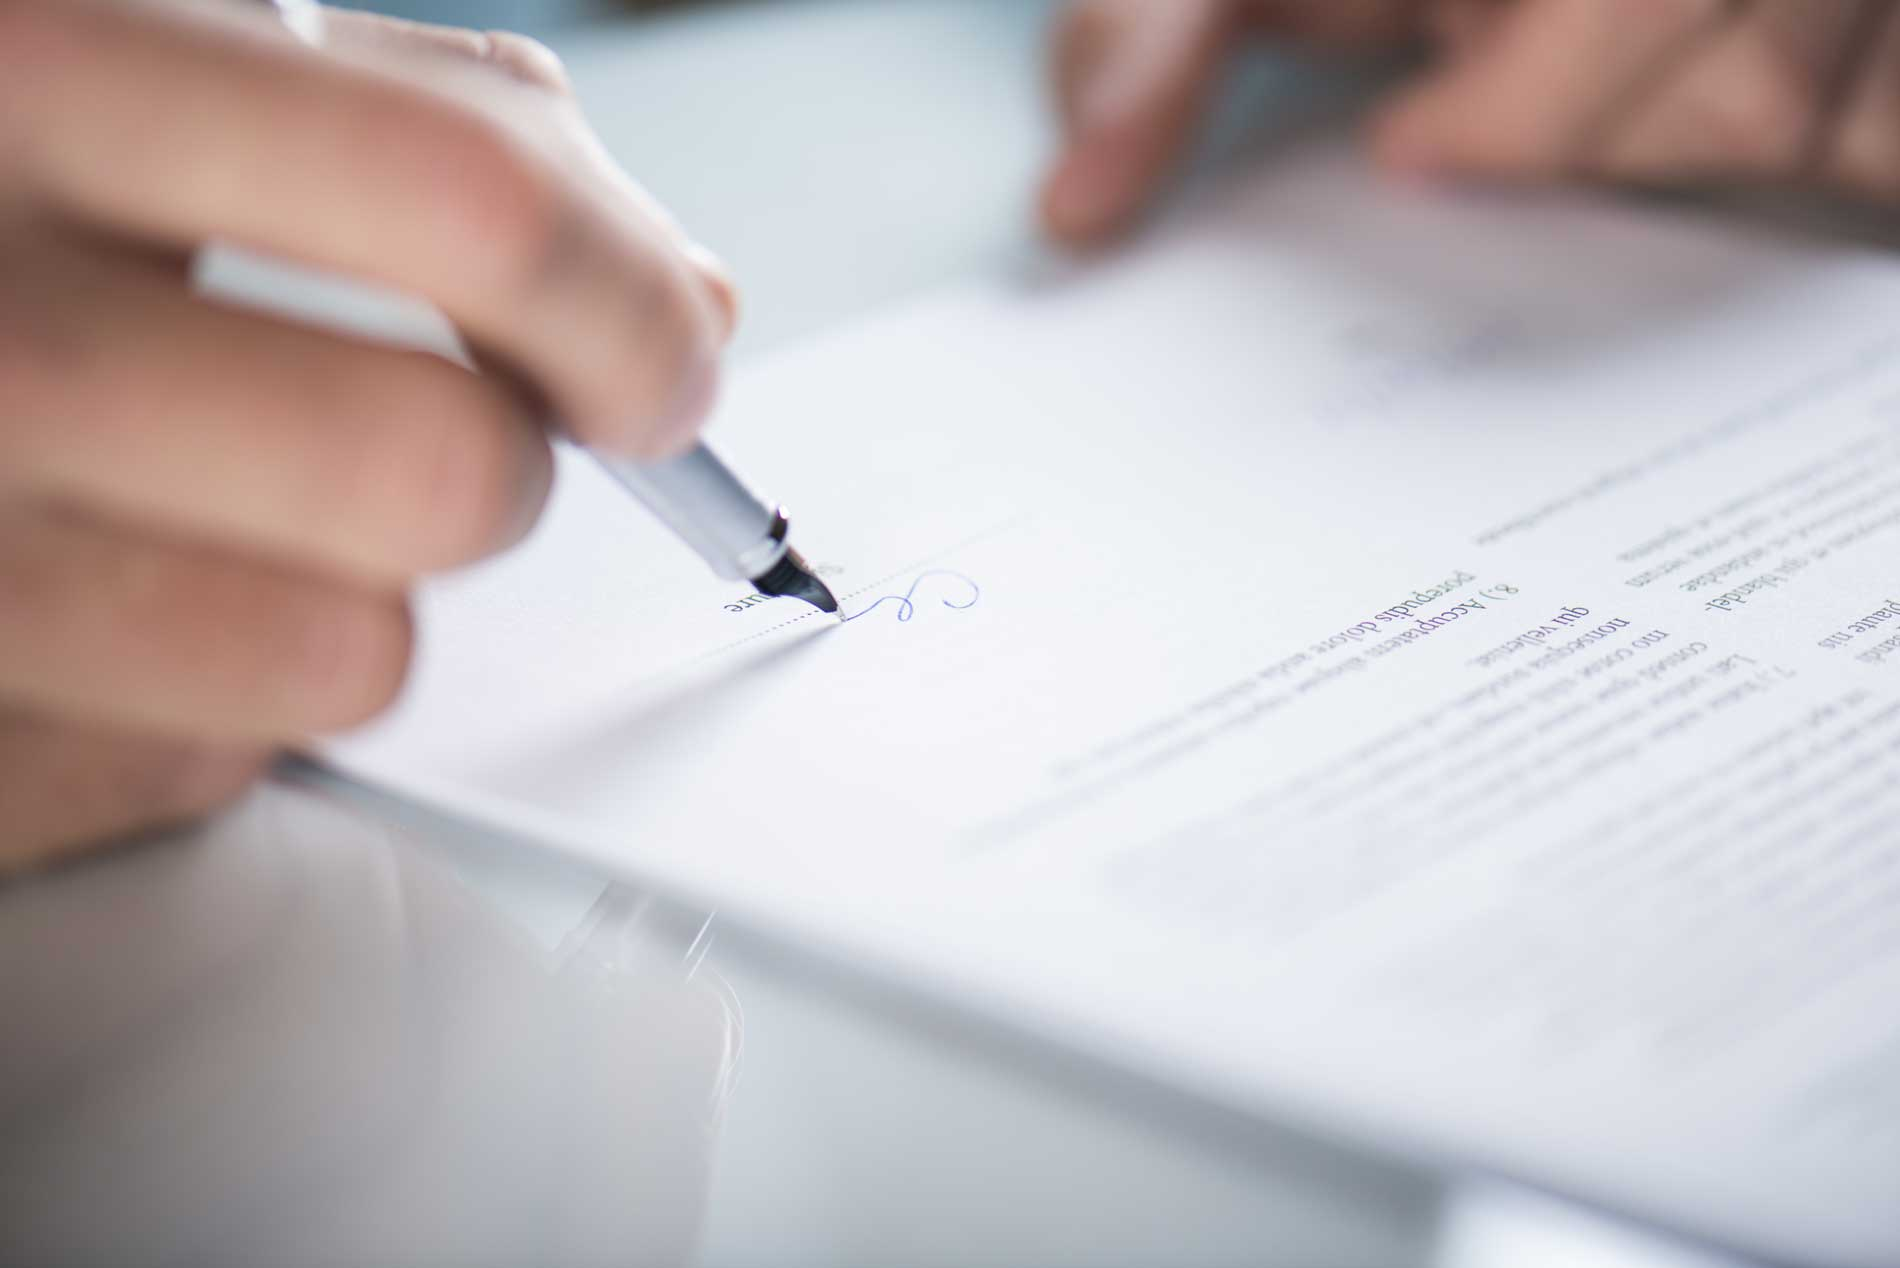 Recent Judgment Effects Waiver and Release Agreements